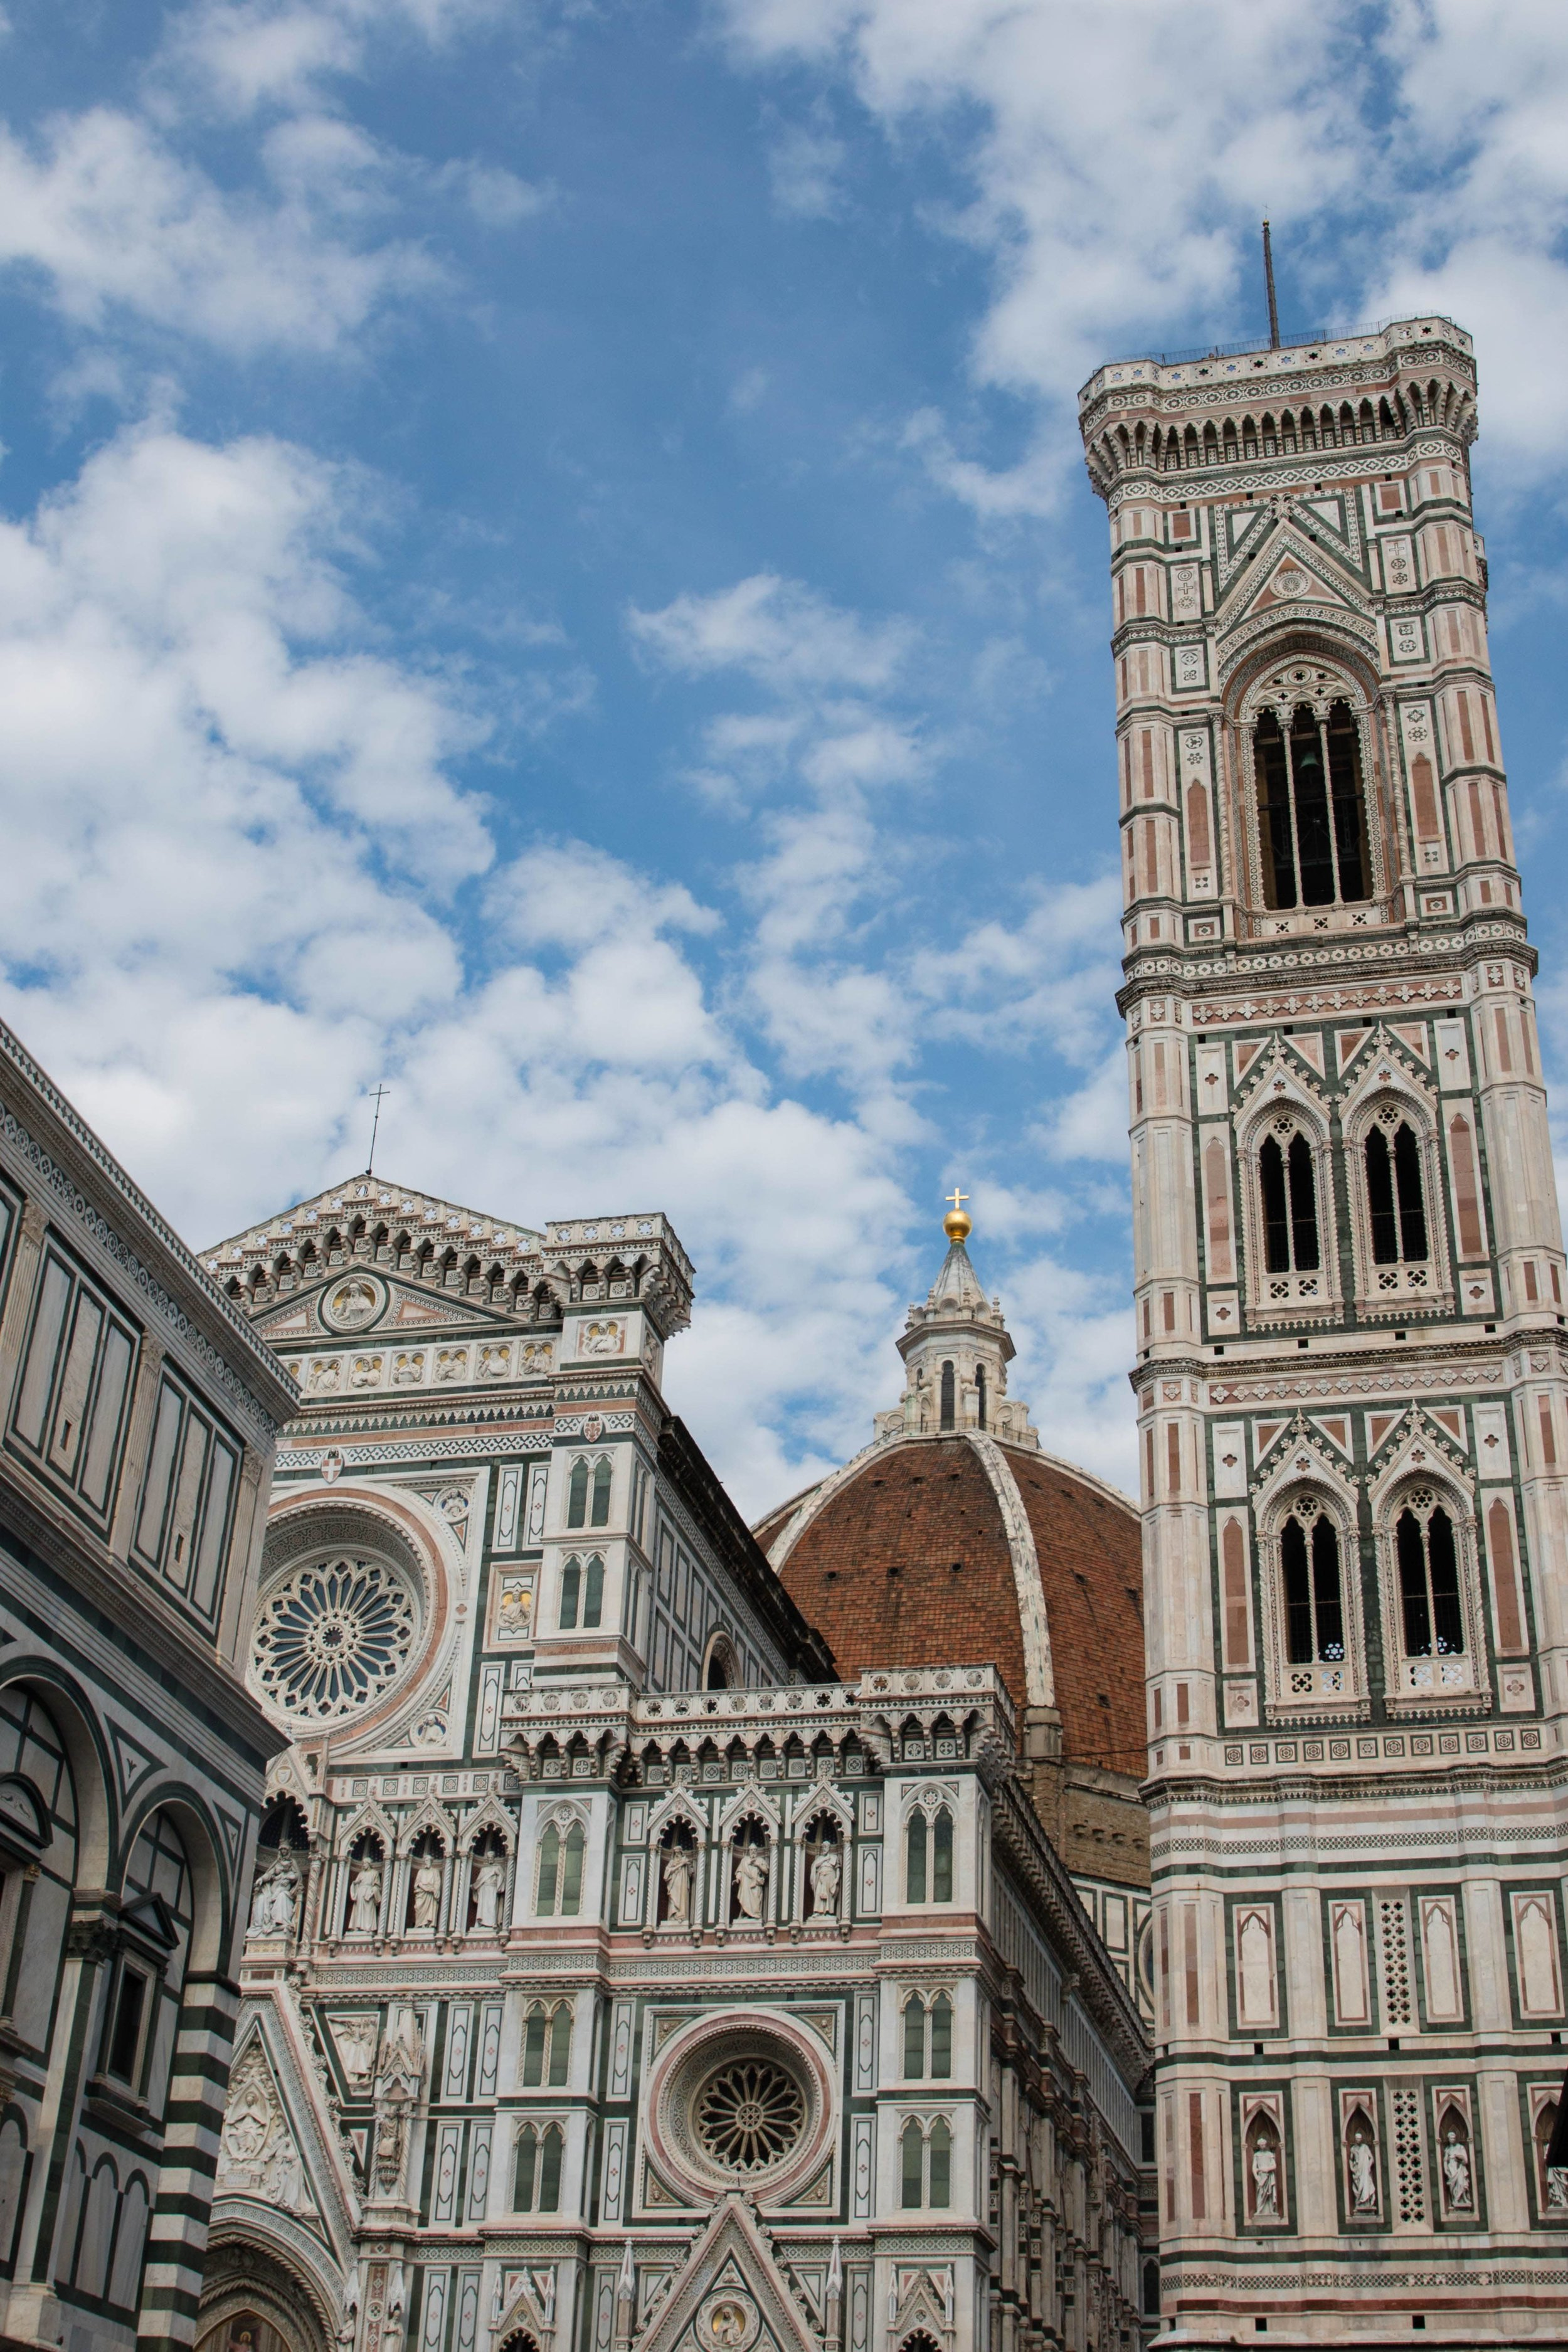 The Duomo, bell tower and Cathedral in Florence, Italy